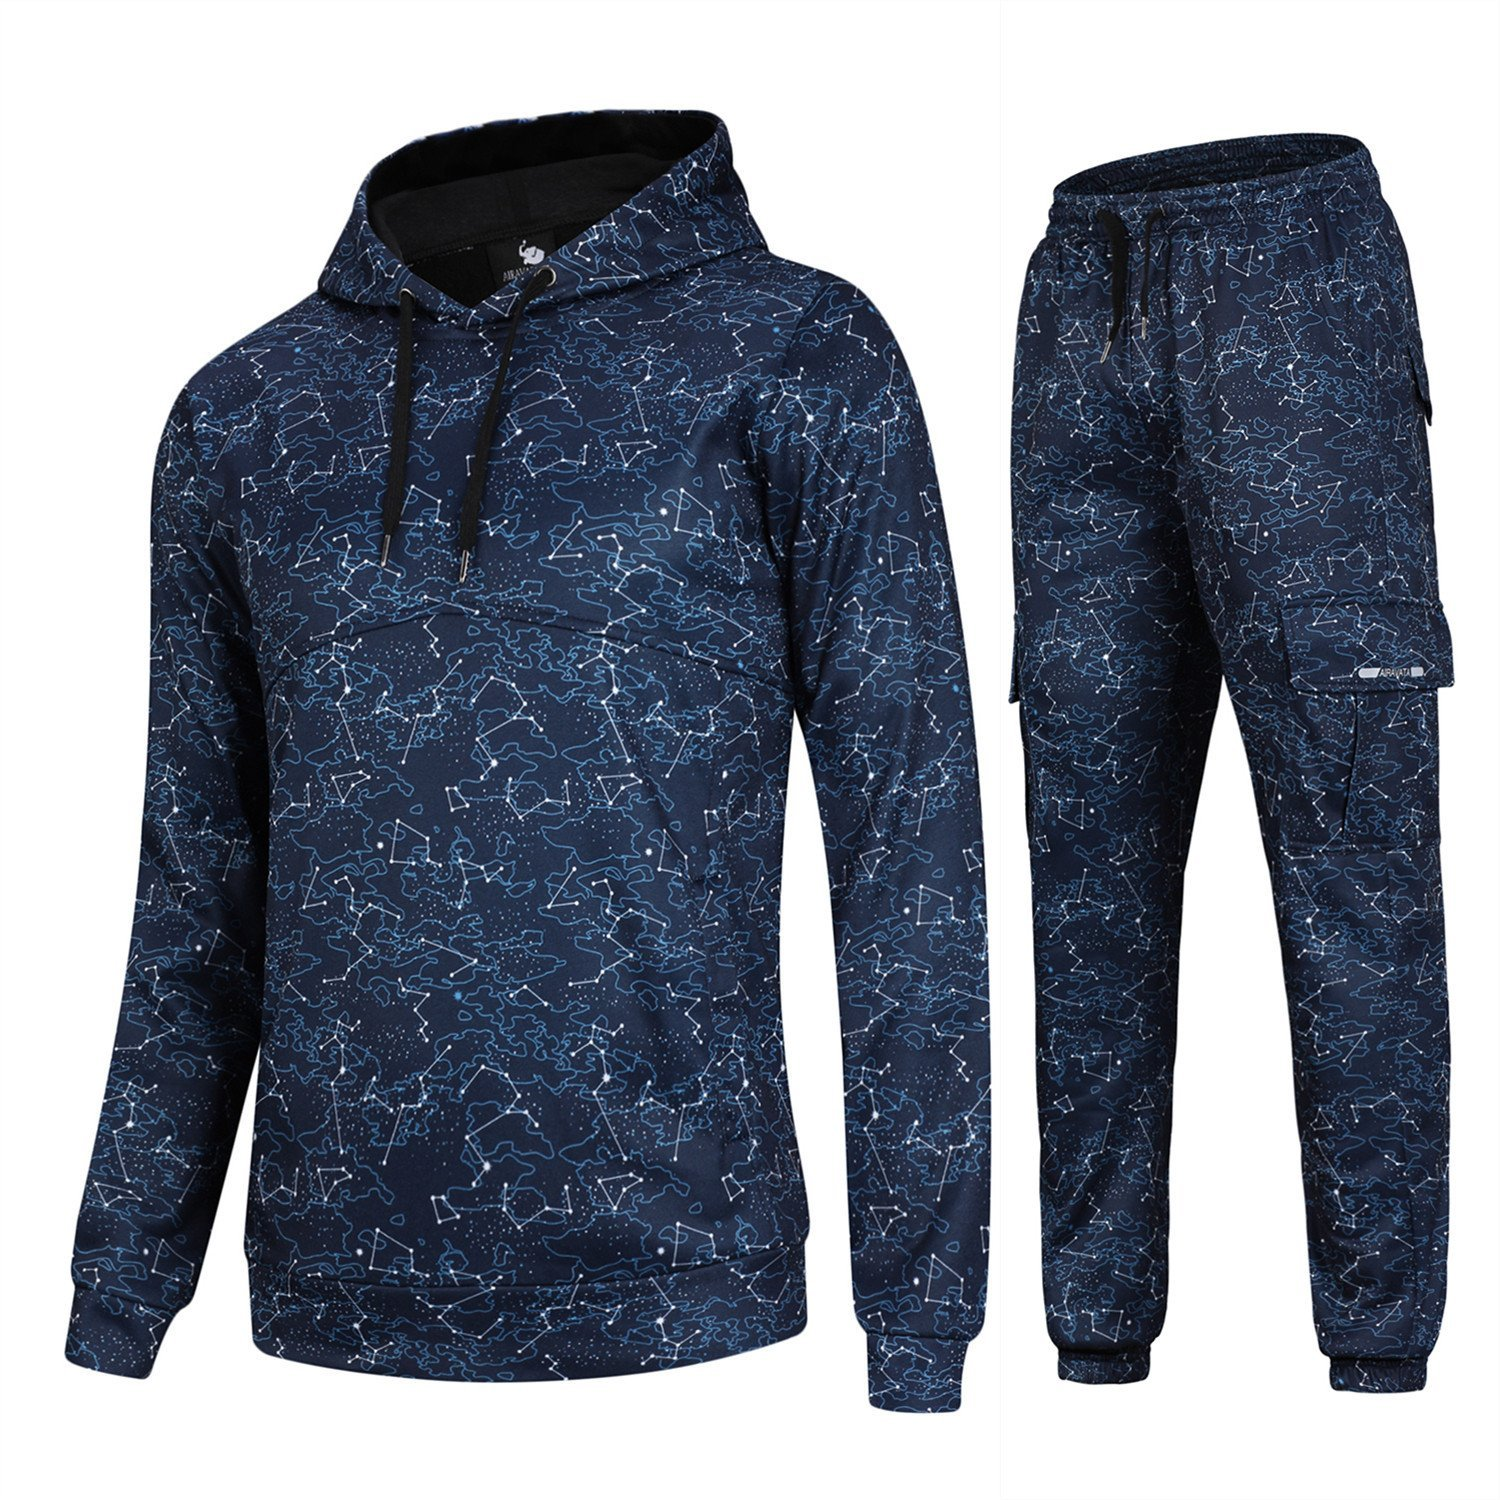 Xswsy XG Mens Casual Activewear Tracksuits 2 Pieces Jacket /& Pants Full Zip Jogging Sweatsuit